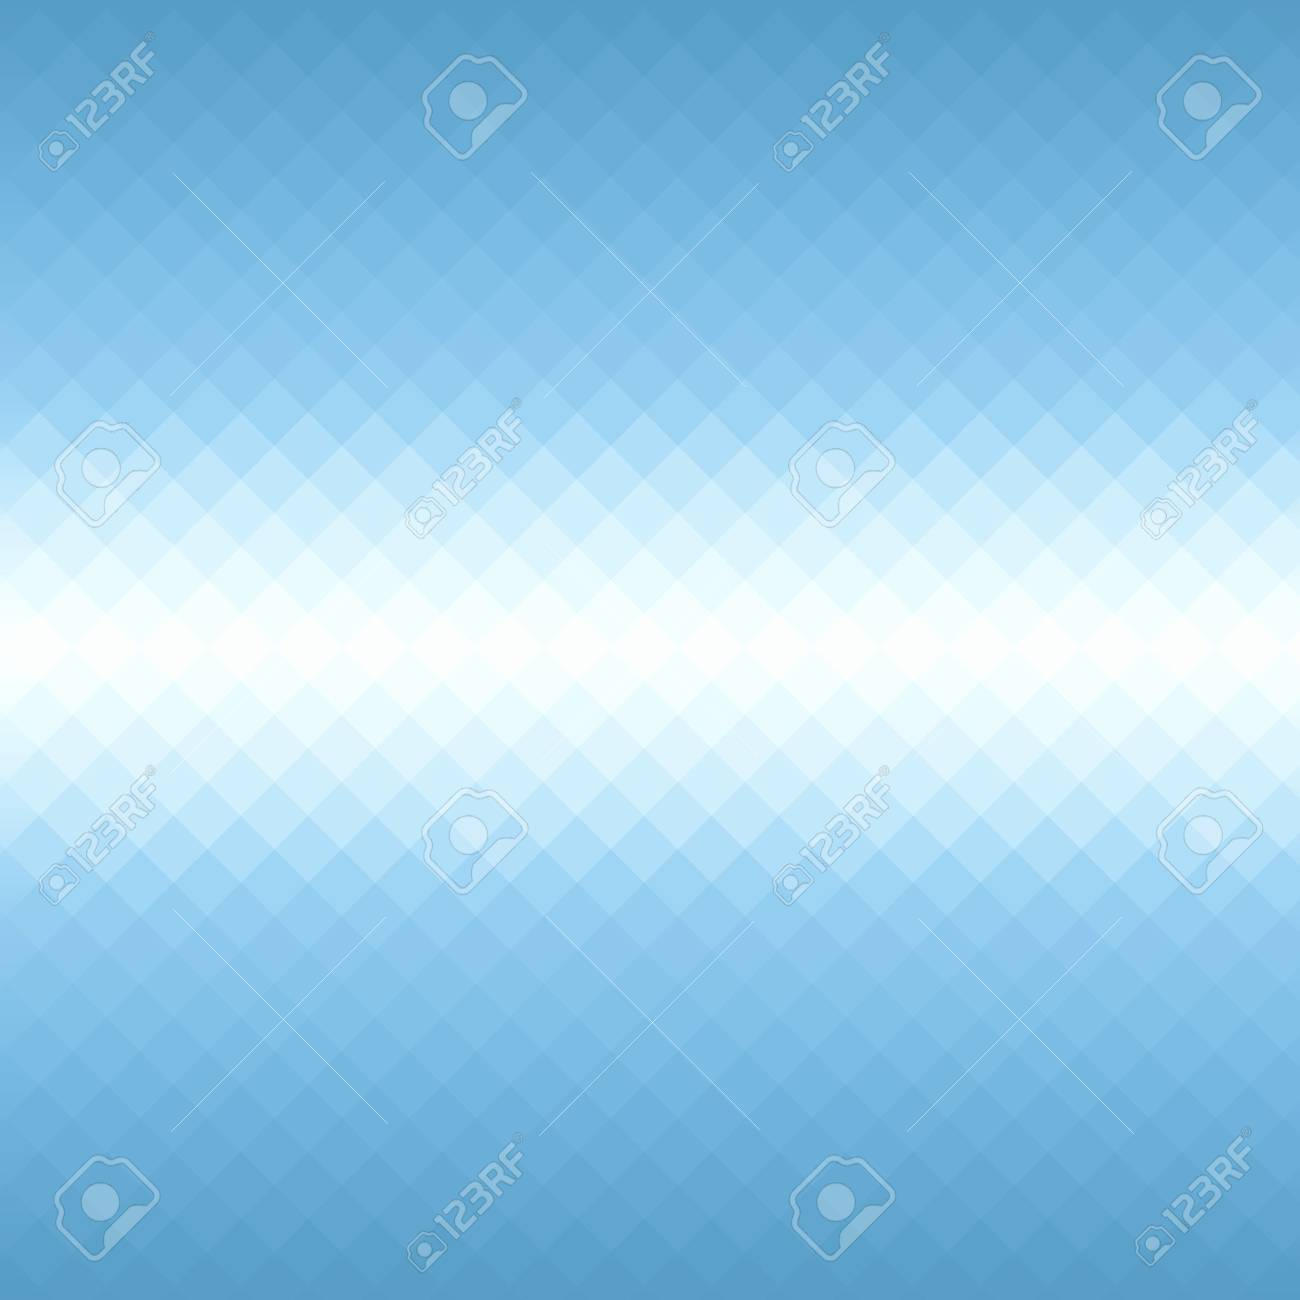 Abstract pixel background Stock Photo - 21796420